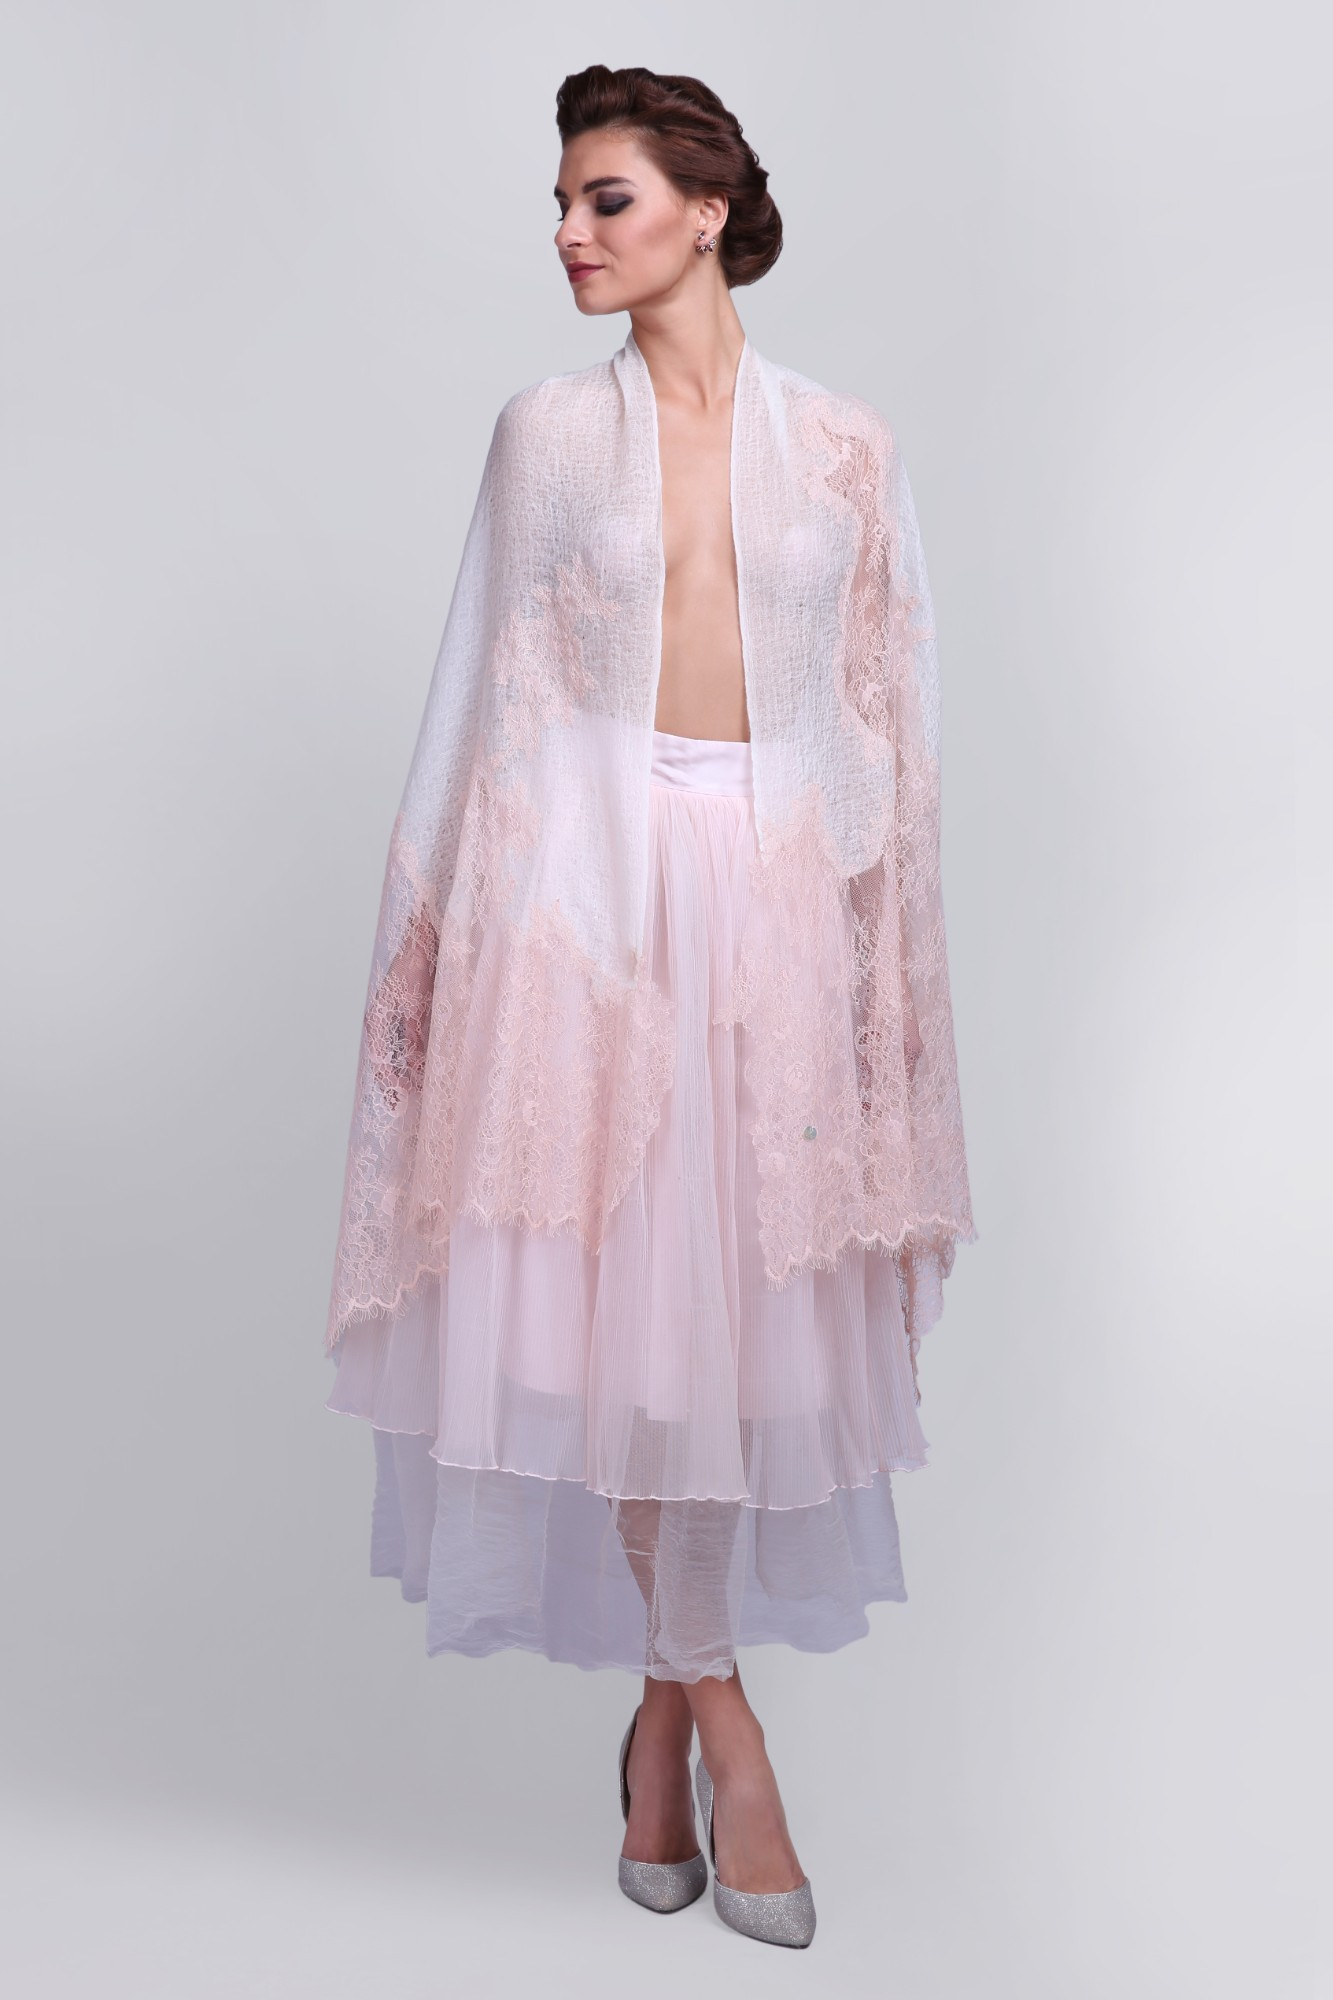 Handcrafted Cashmere Wrap Shawl with French Lace - VS 12384 Ivory